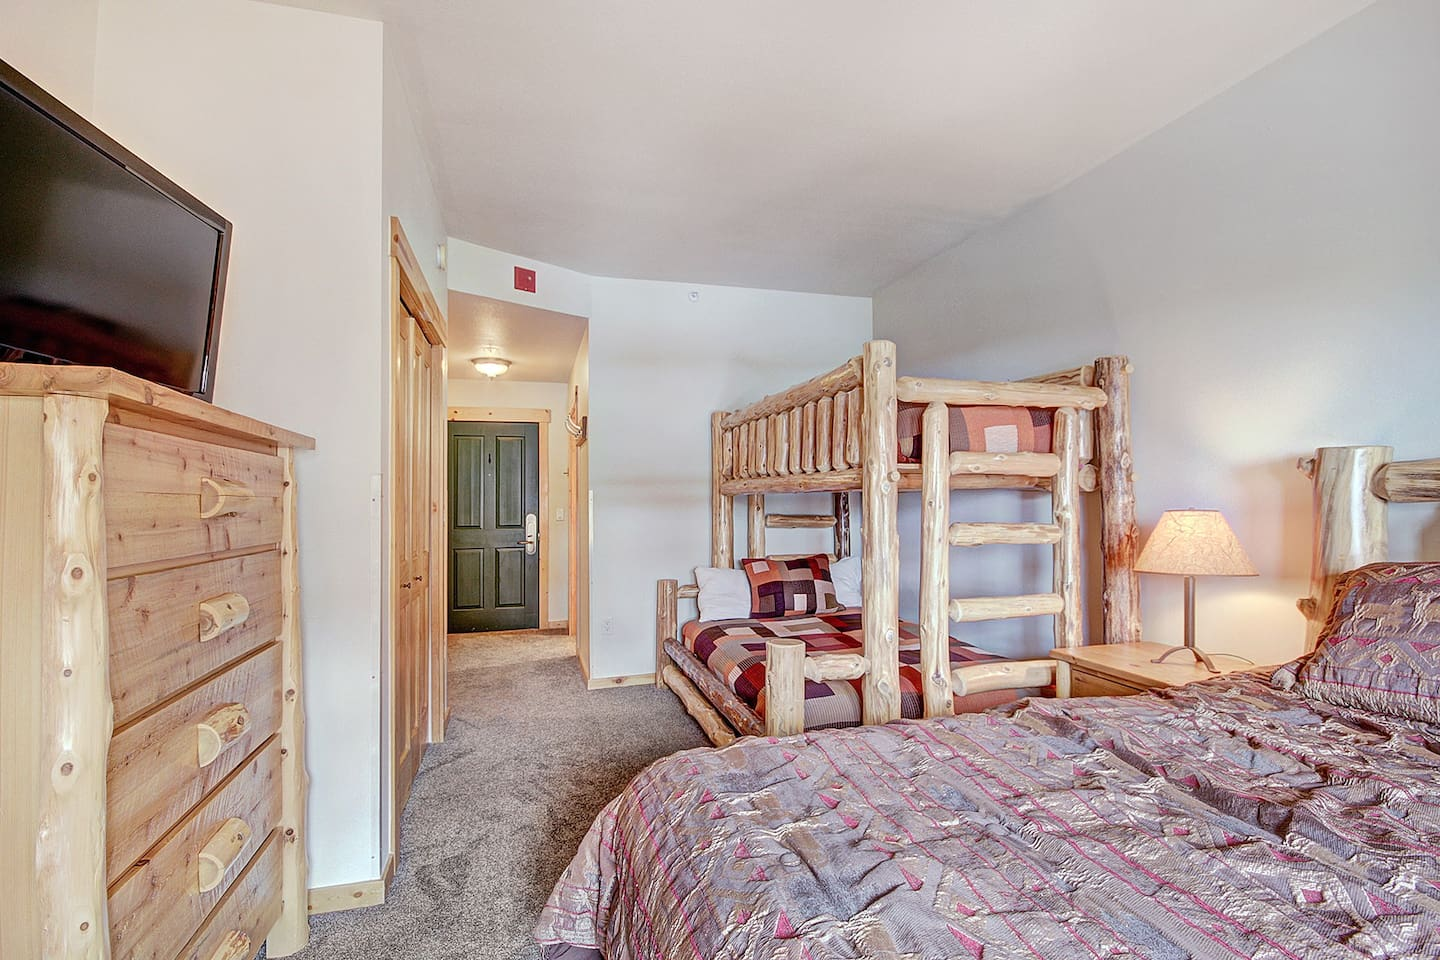 TM407H Tucker Mtn Lodge - a SkyRun Copper Property - Hotel Room - 1 King Bed and a Bunk with Twin over Double